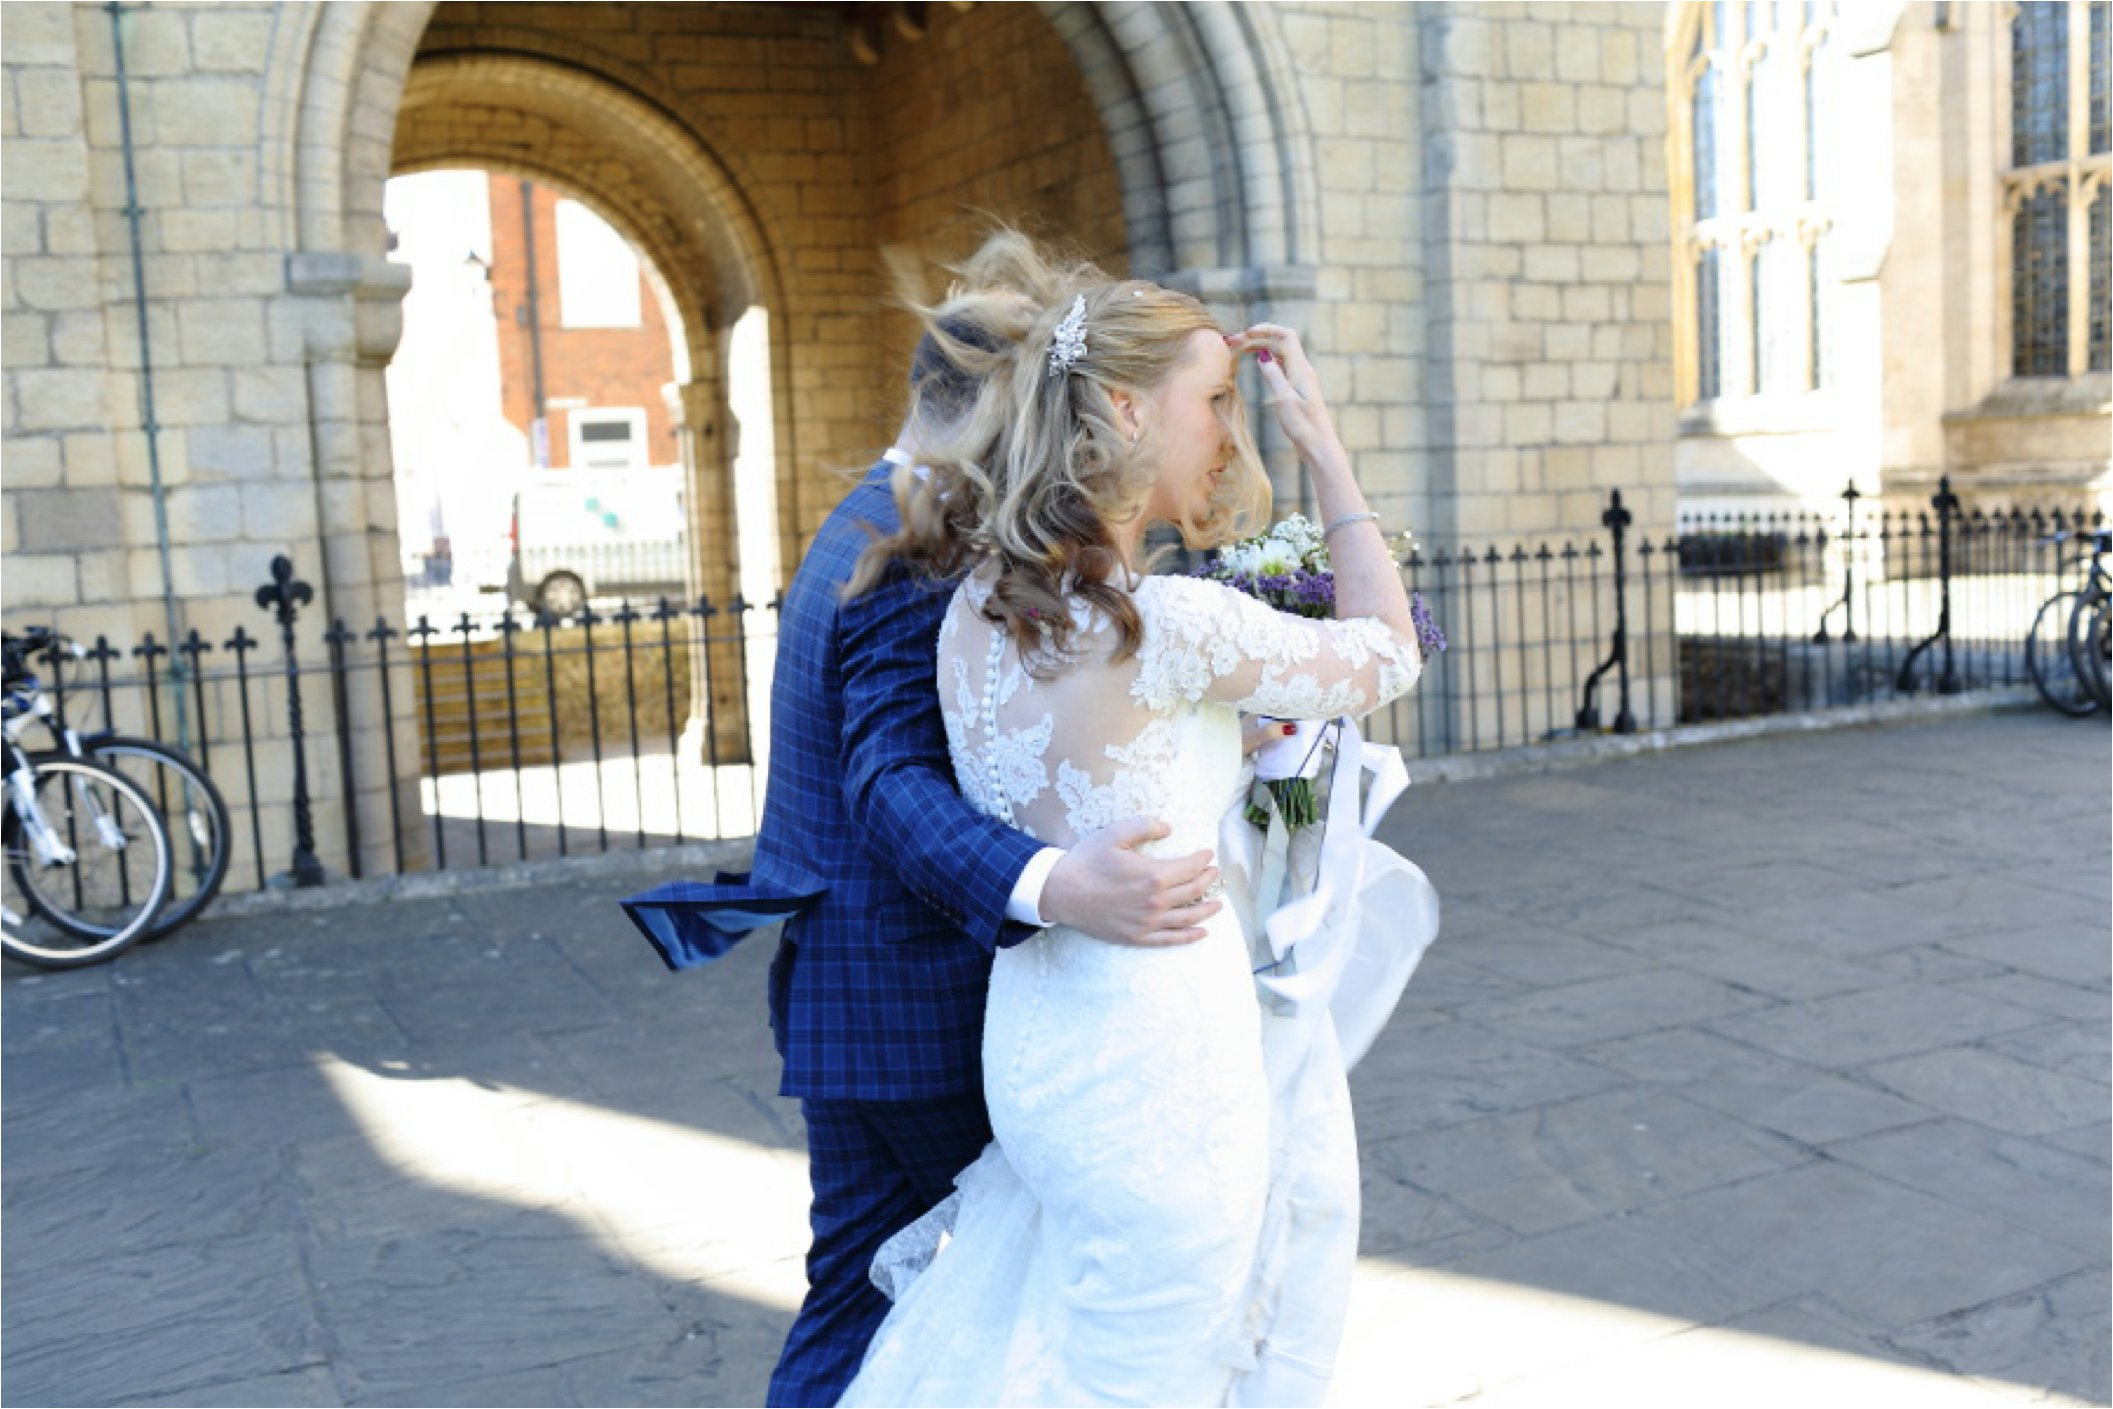 Reportage wedding photography, Bury St Edmunds. Brides hair blowing in the wind